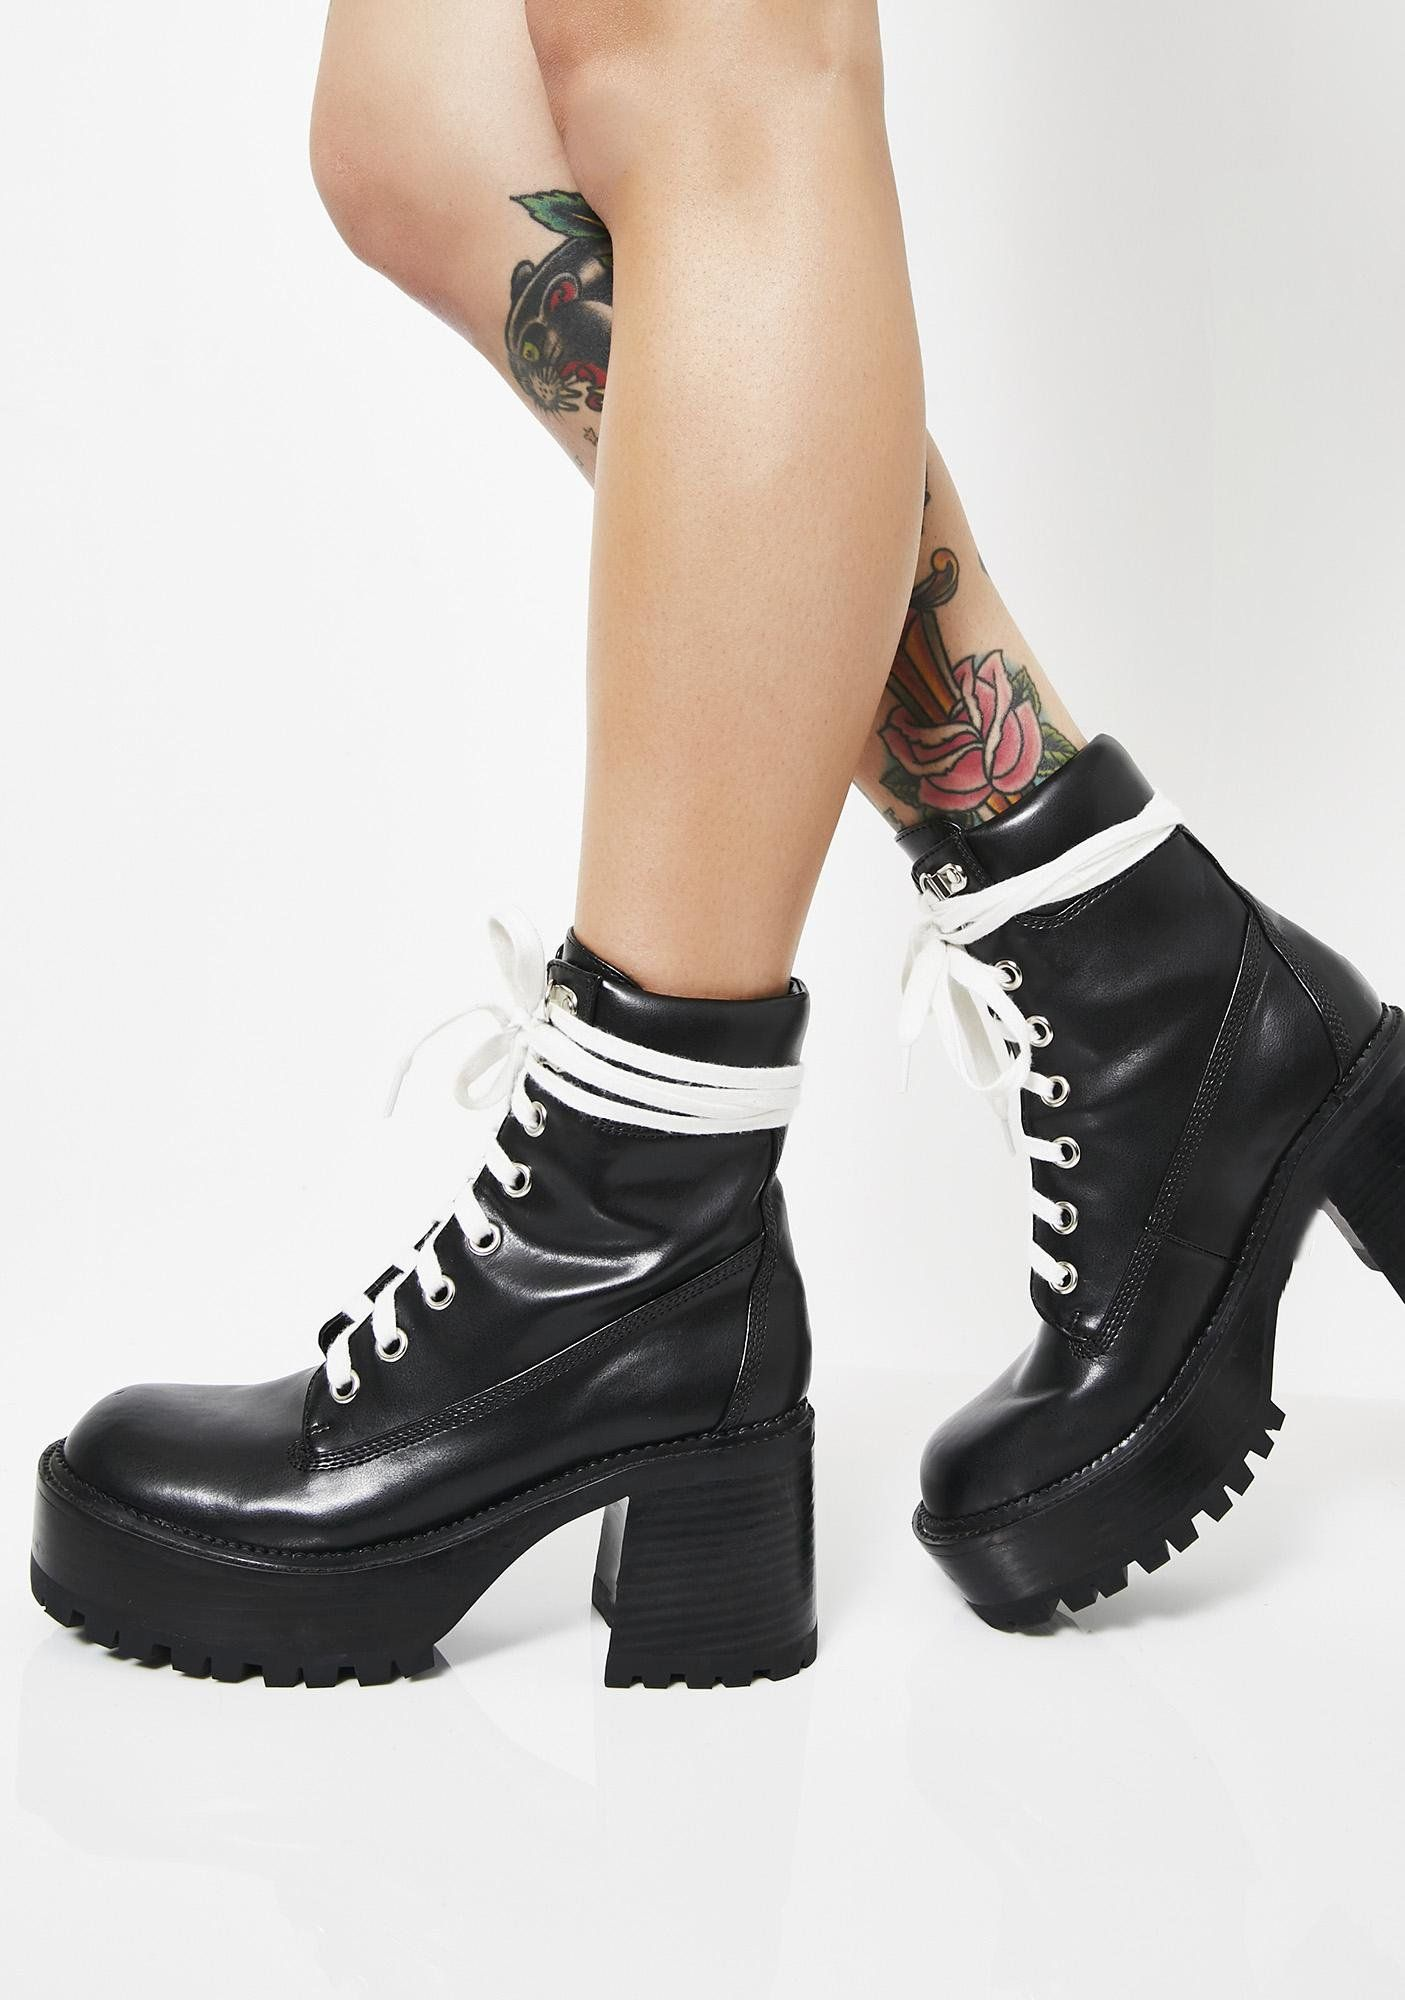 41a9d5e8922 Current Mood Take A Hike Chunky Boots at Dolls Kill